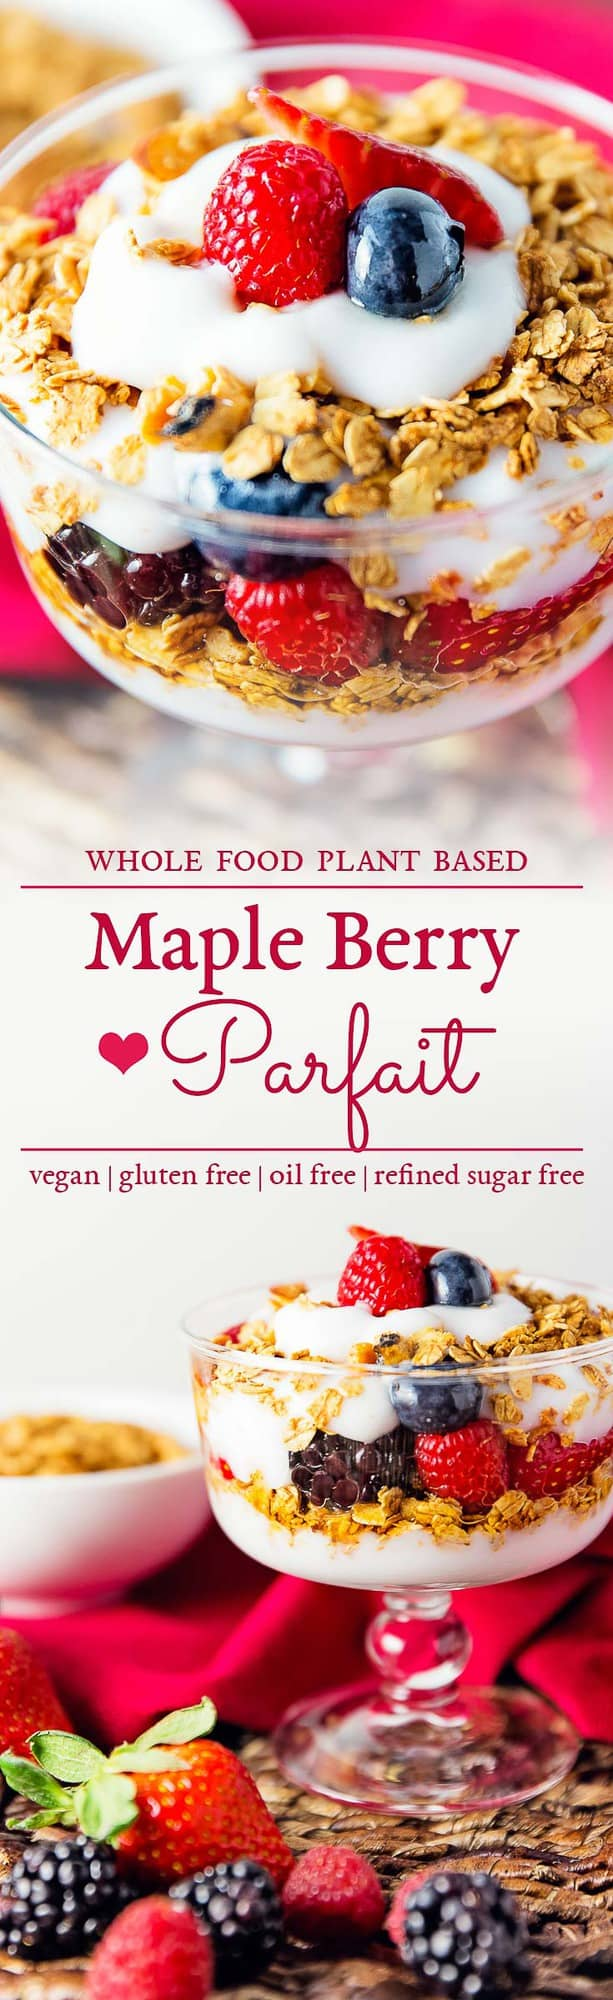 maple berry parfait, berry parfait, maple parfait, parfait, recipe, vegan, vegetarian, whole food plant based, oil free, no oil, refined sugar free, no refined sugar, breakfast, dessert, simple, east, fast, 30 minutes, healthy, vegan parfait, whole food plant based parfait, whole food plant based recipe, whole food plant based breakfast, gluten free, gluten free recipe, gluten free breakfast, granola, berries, maple syrup, cinnamon, oats, minimally processed, meals, unprocessed